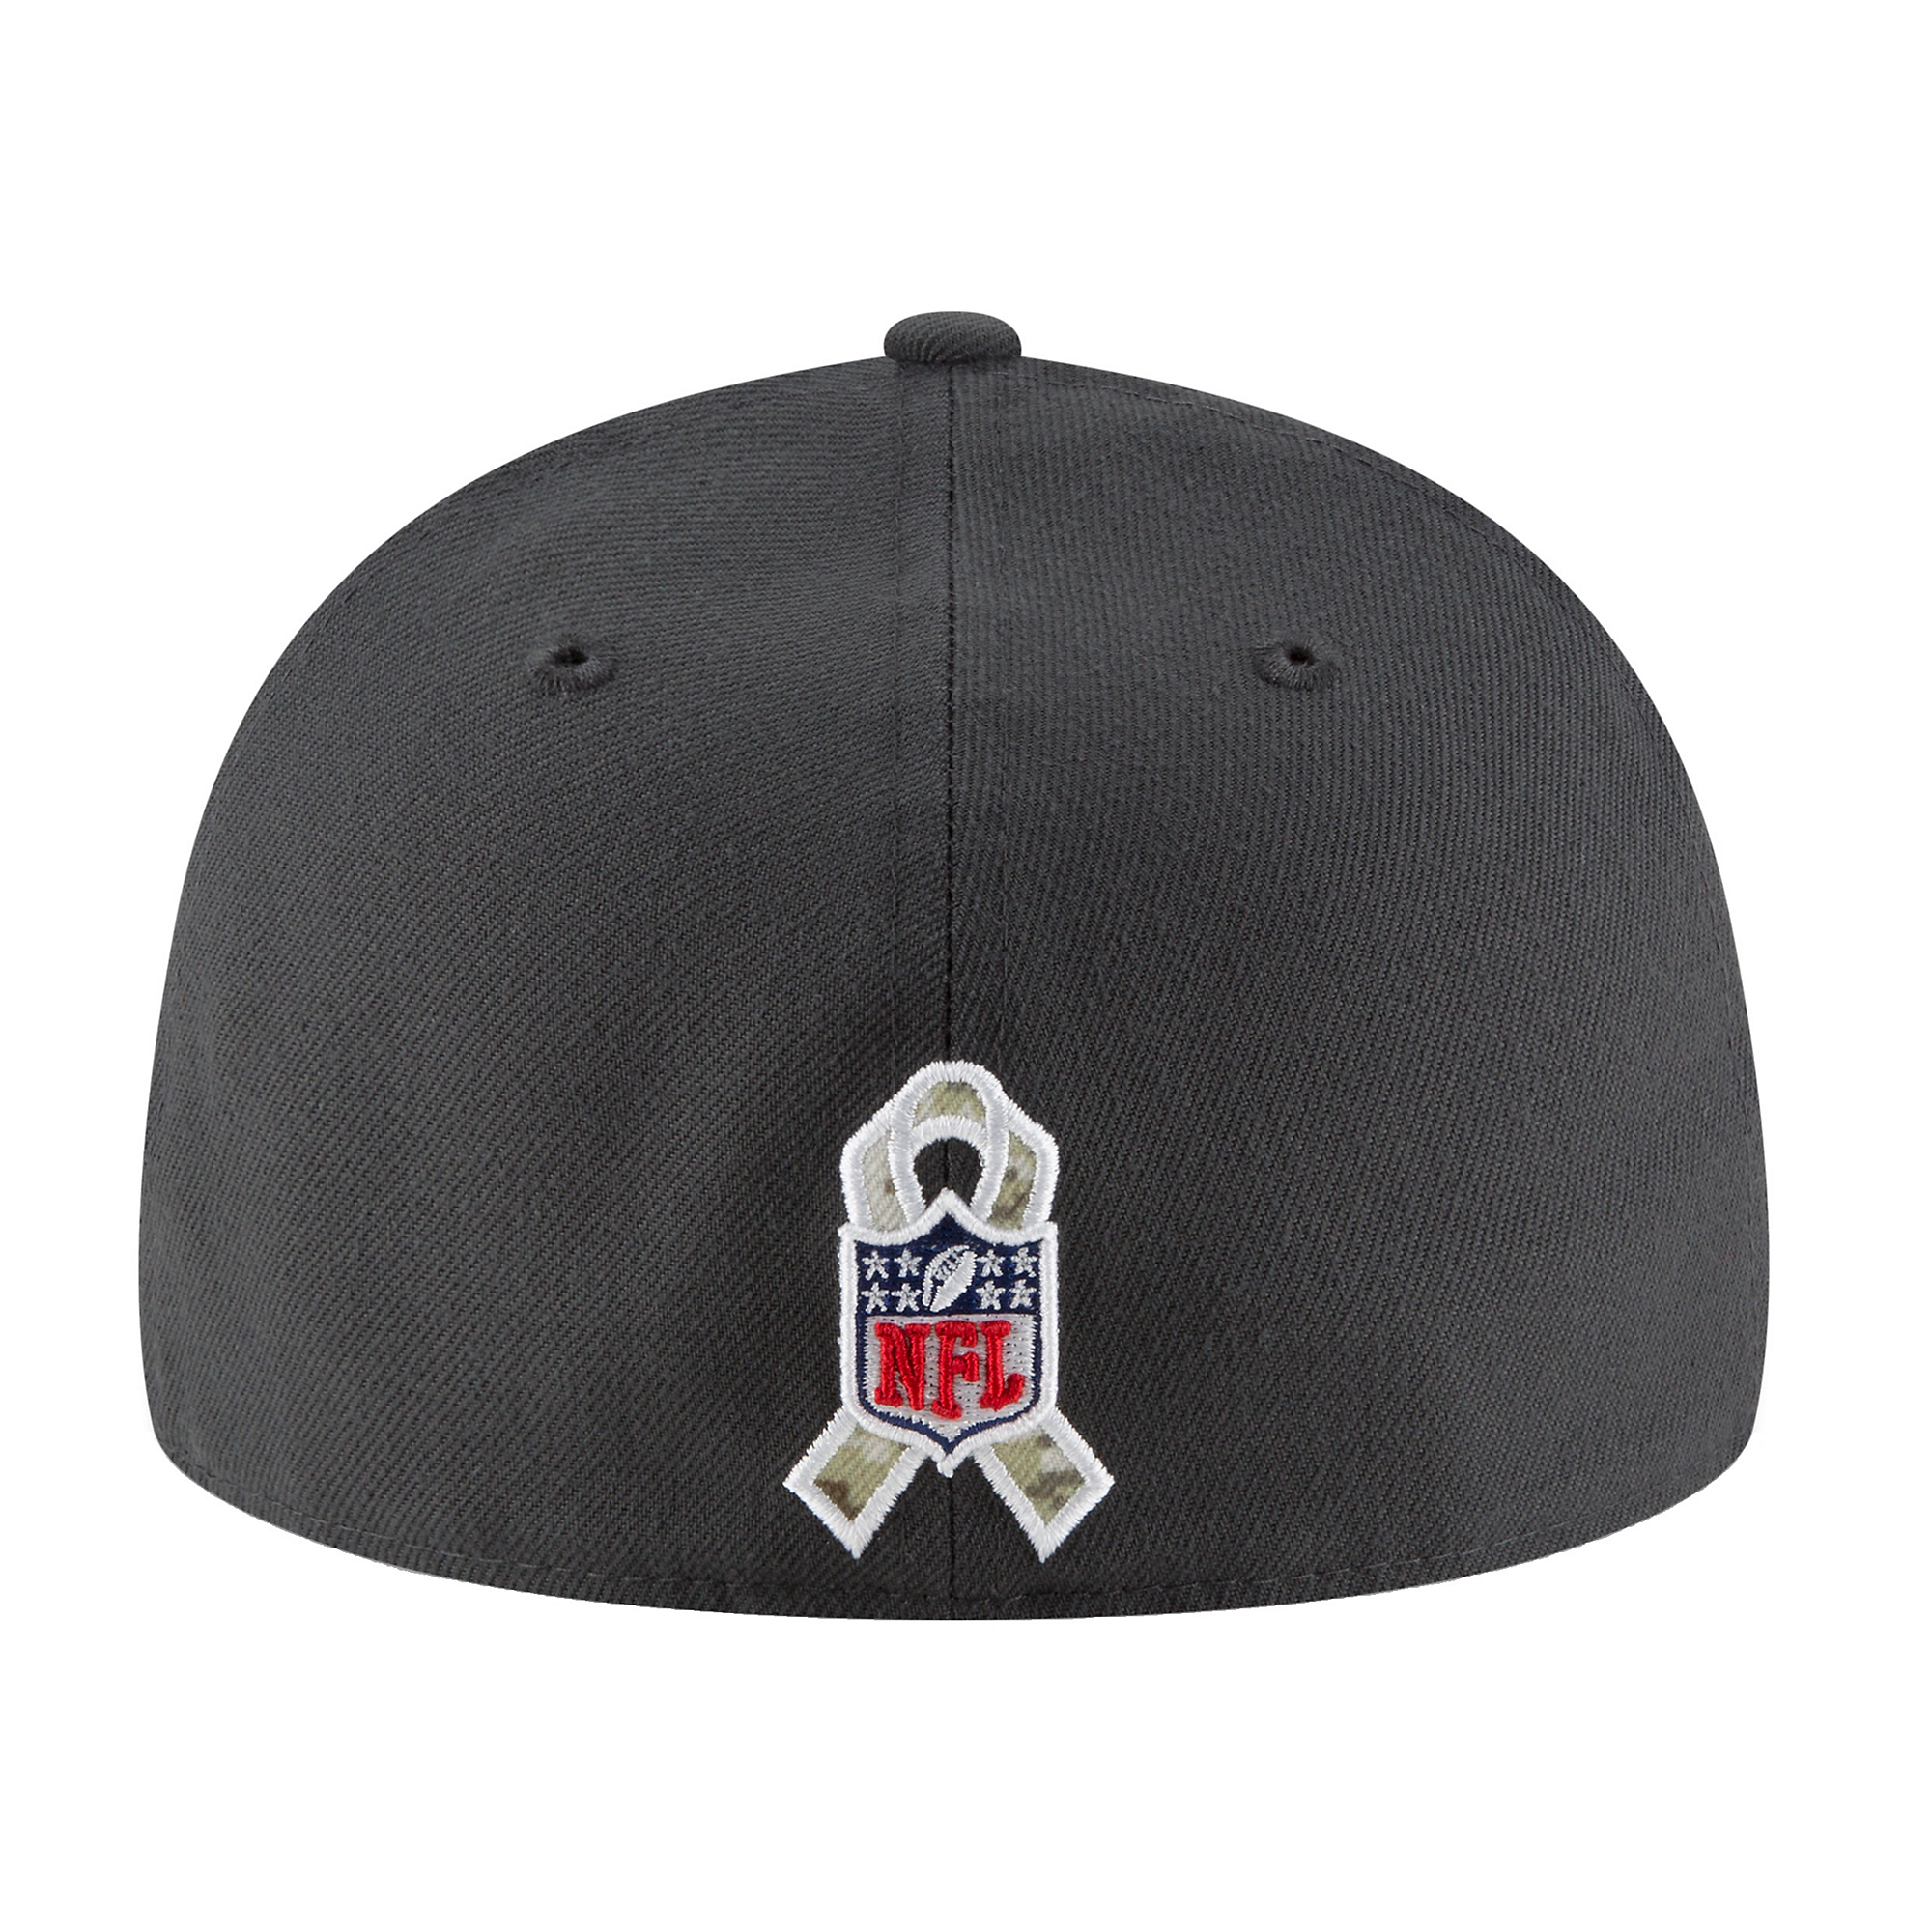 ca6ea2dab7859d ... australia dallas cowboys new era salute to service low crown 59fifty cap  50f33 12470